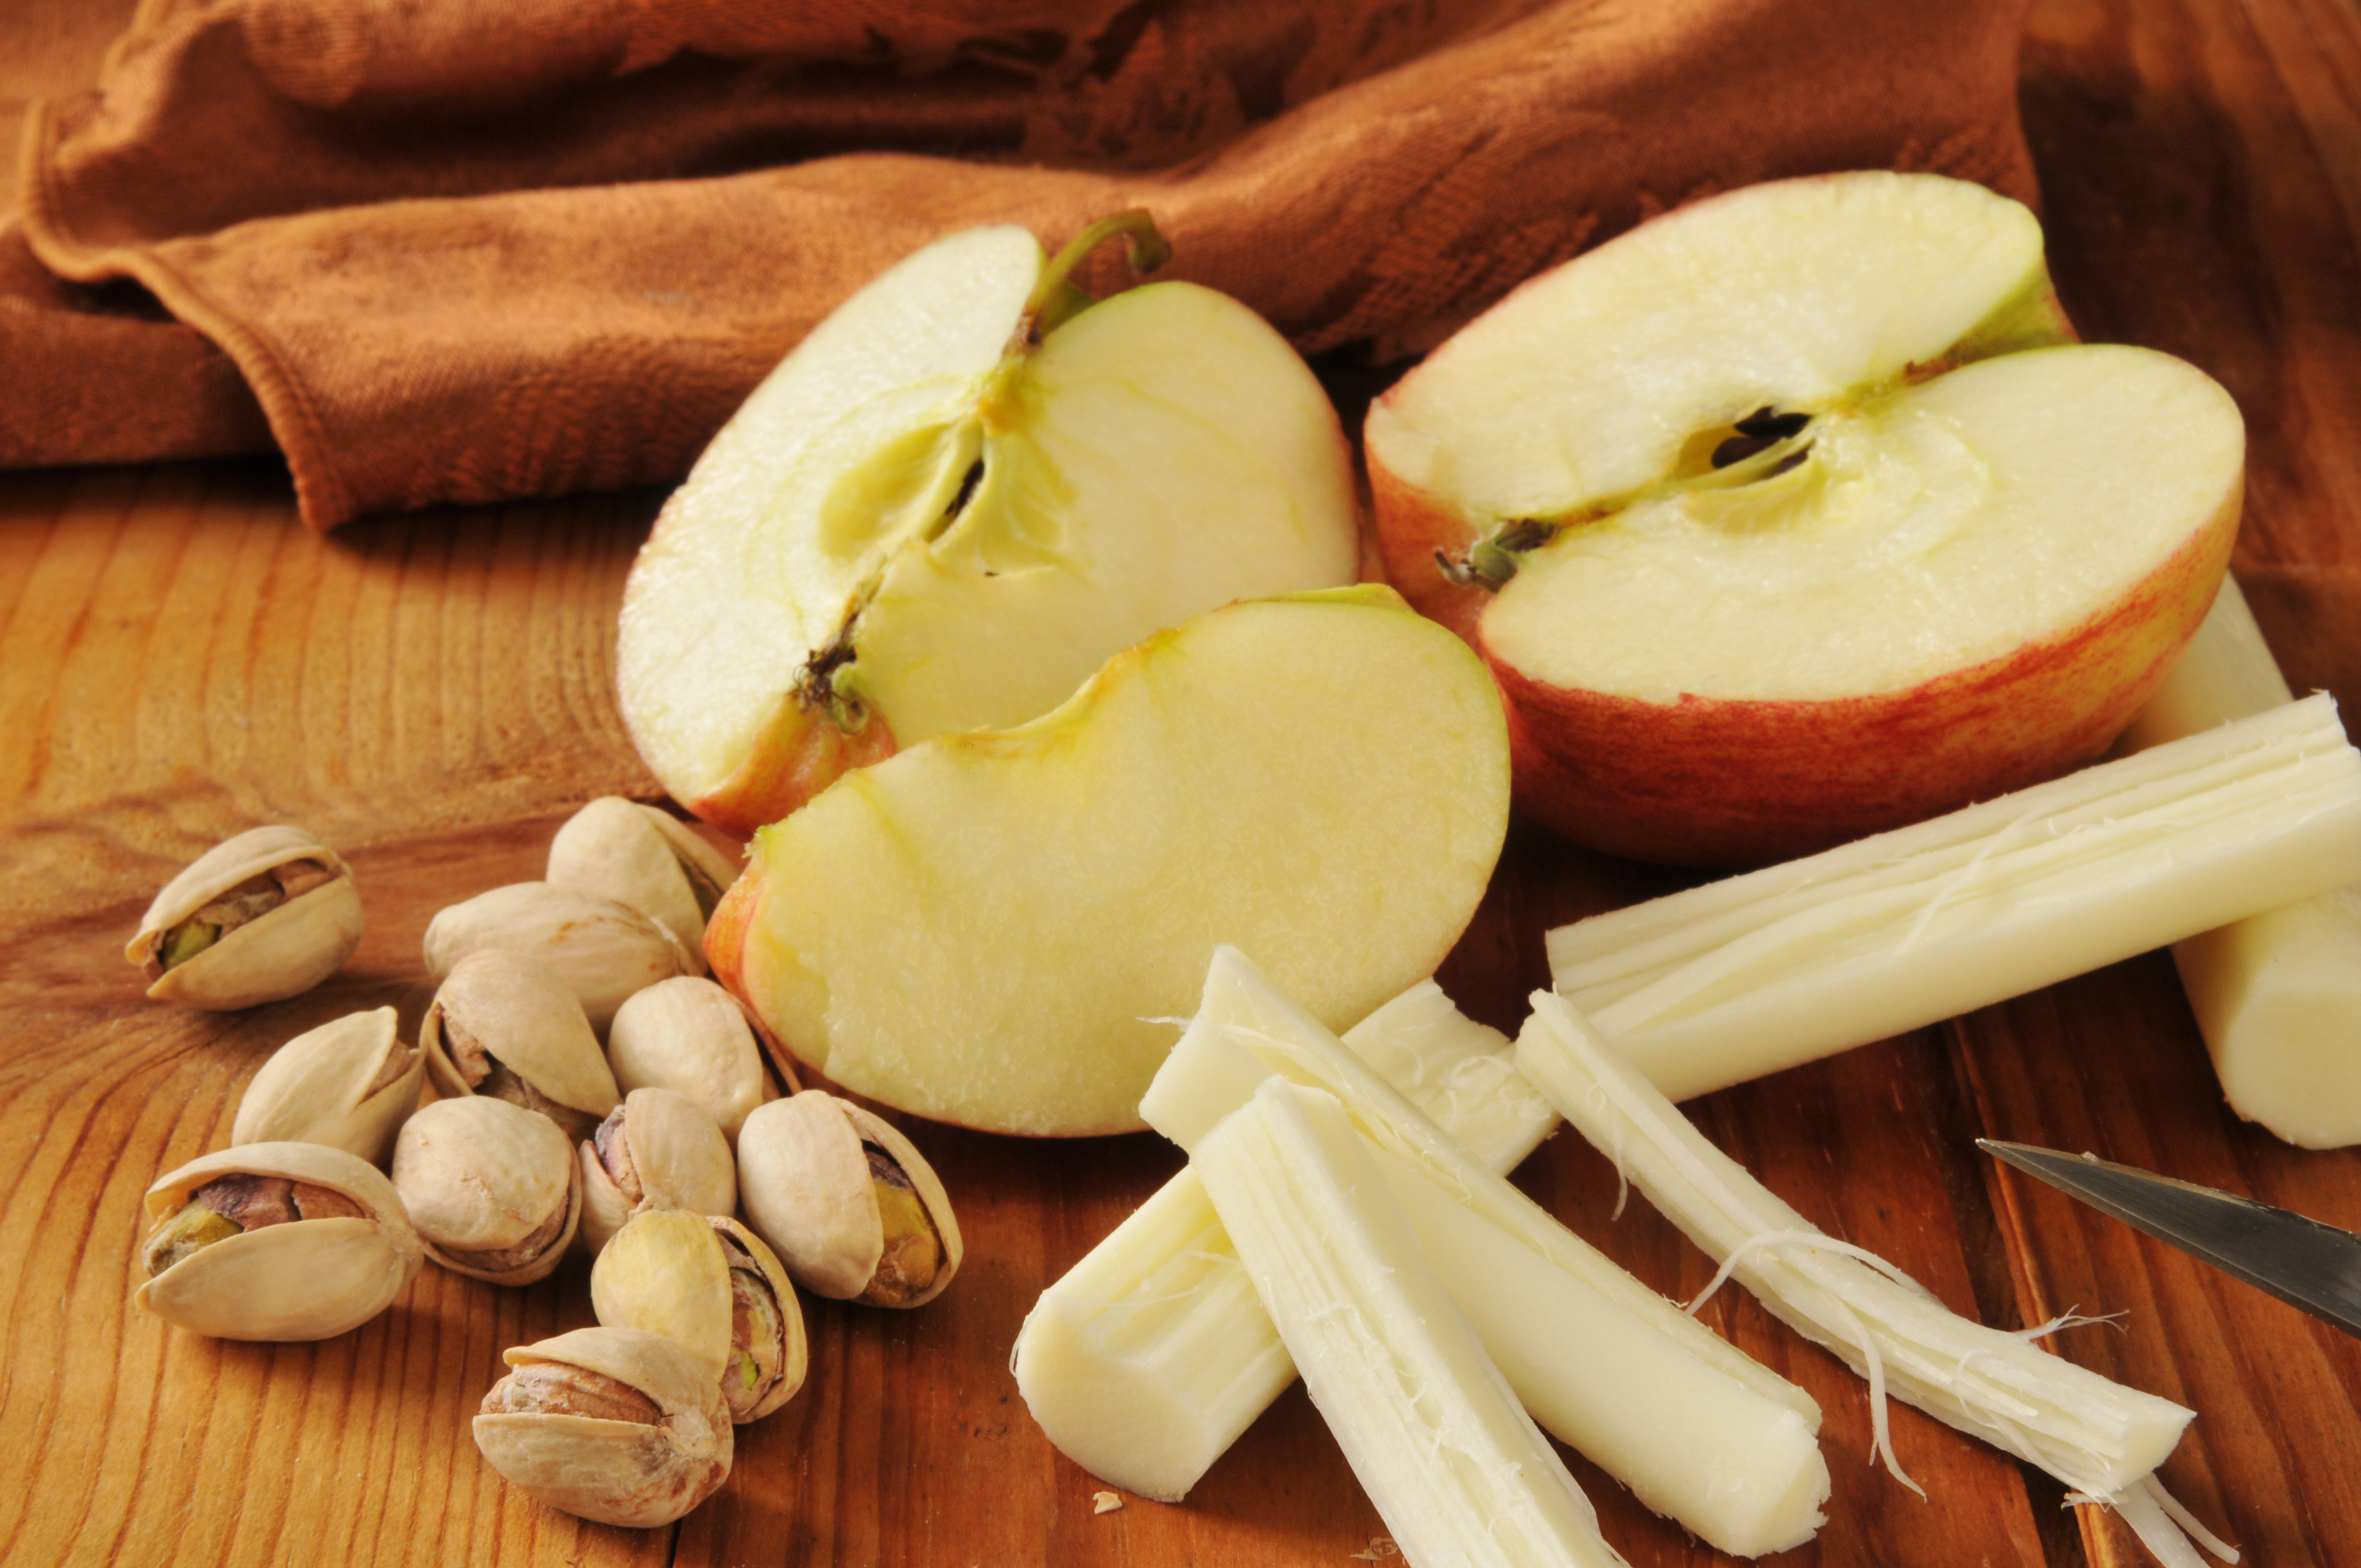 snack with pistachio nuts, apples and string cheese